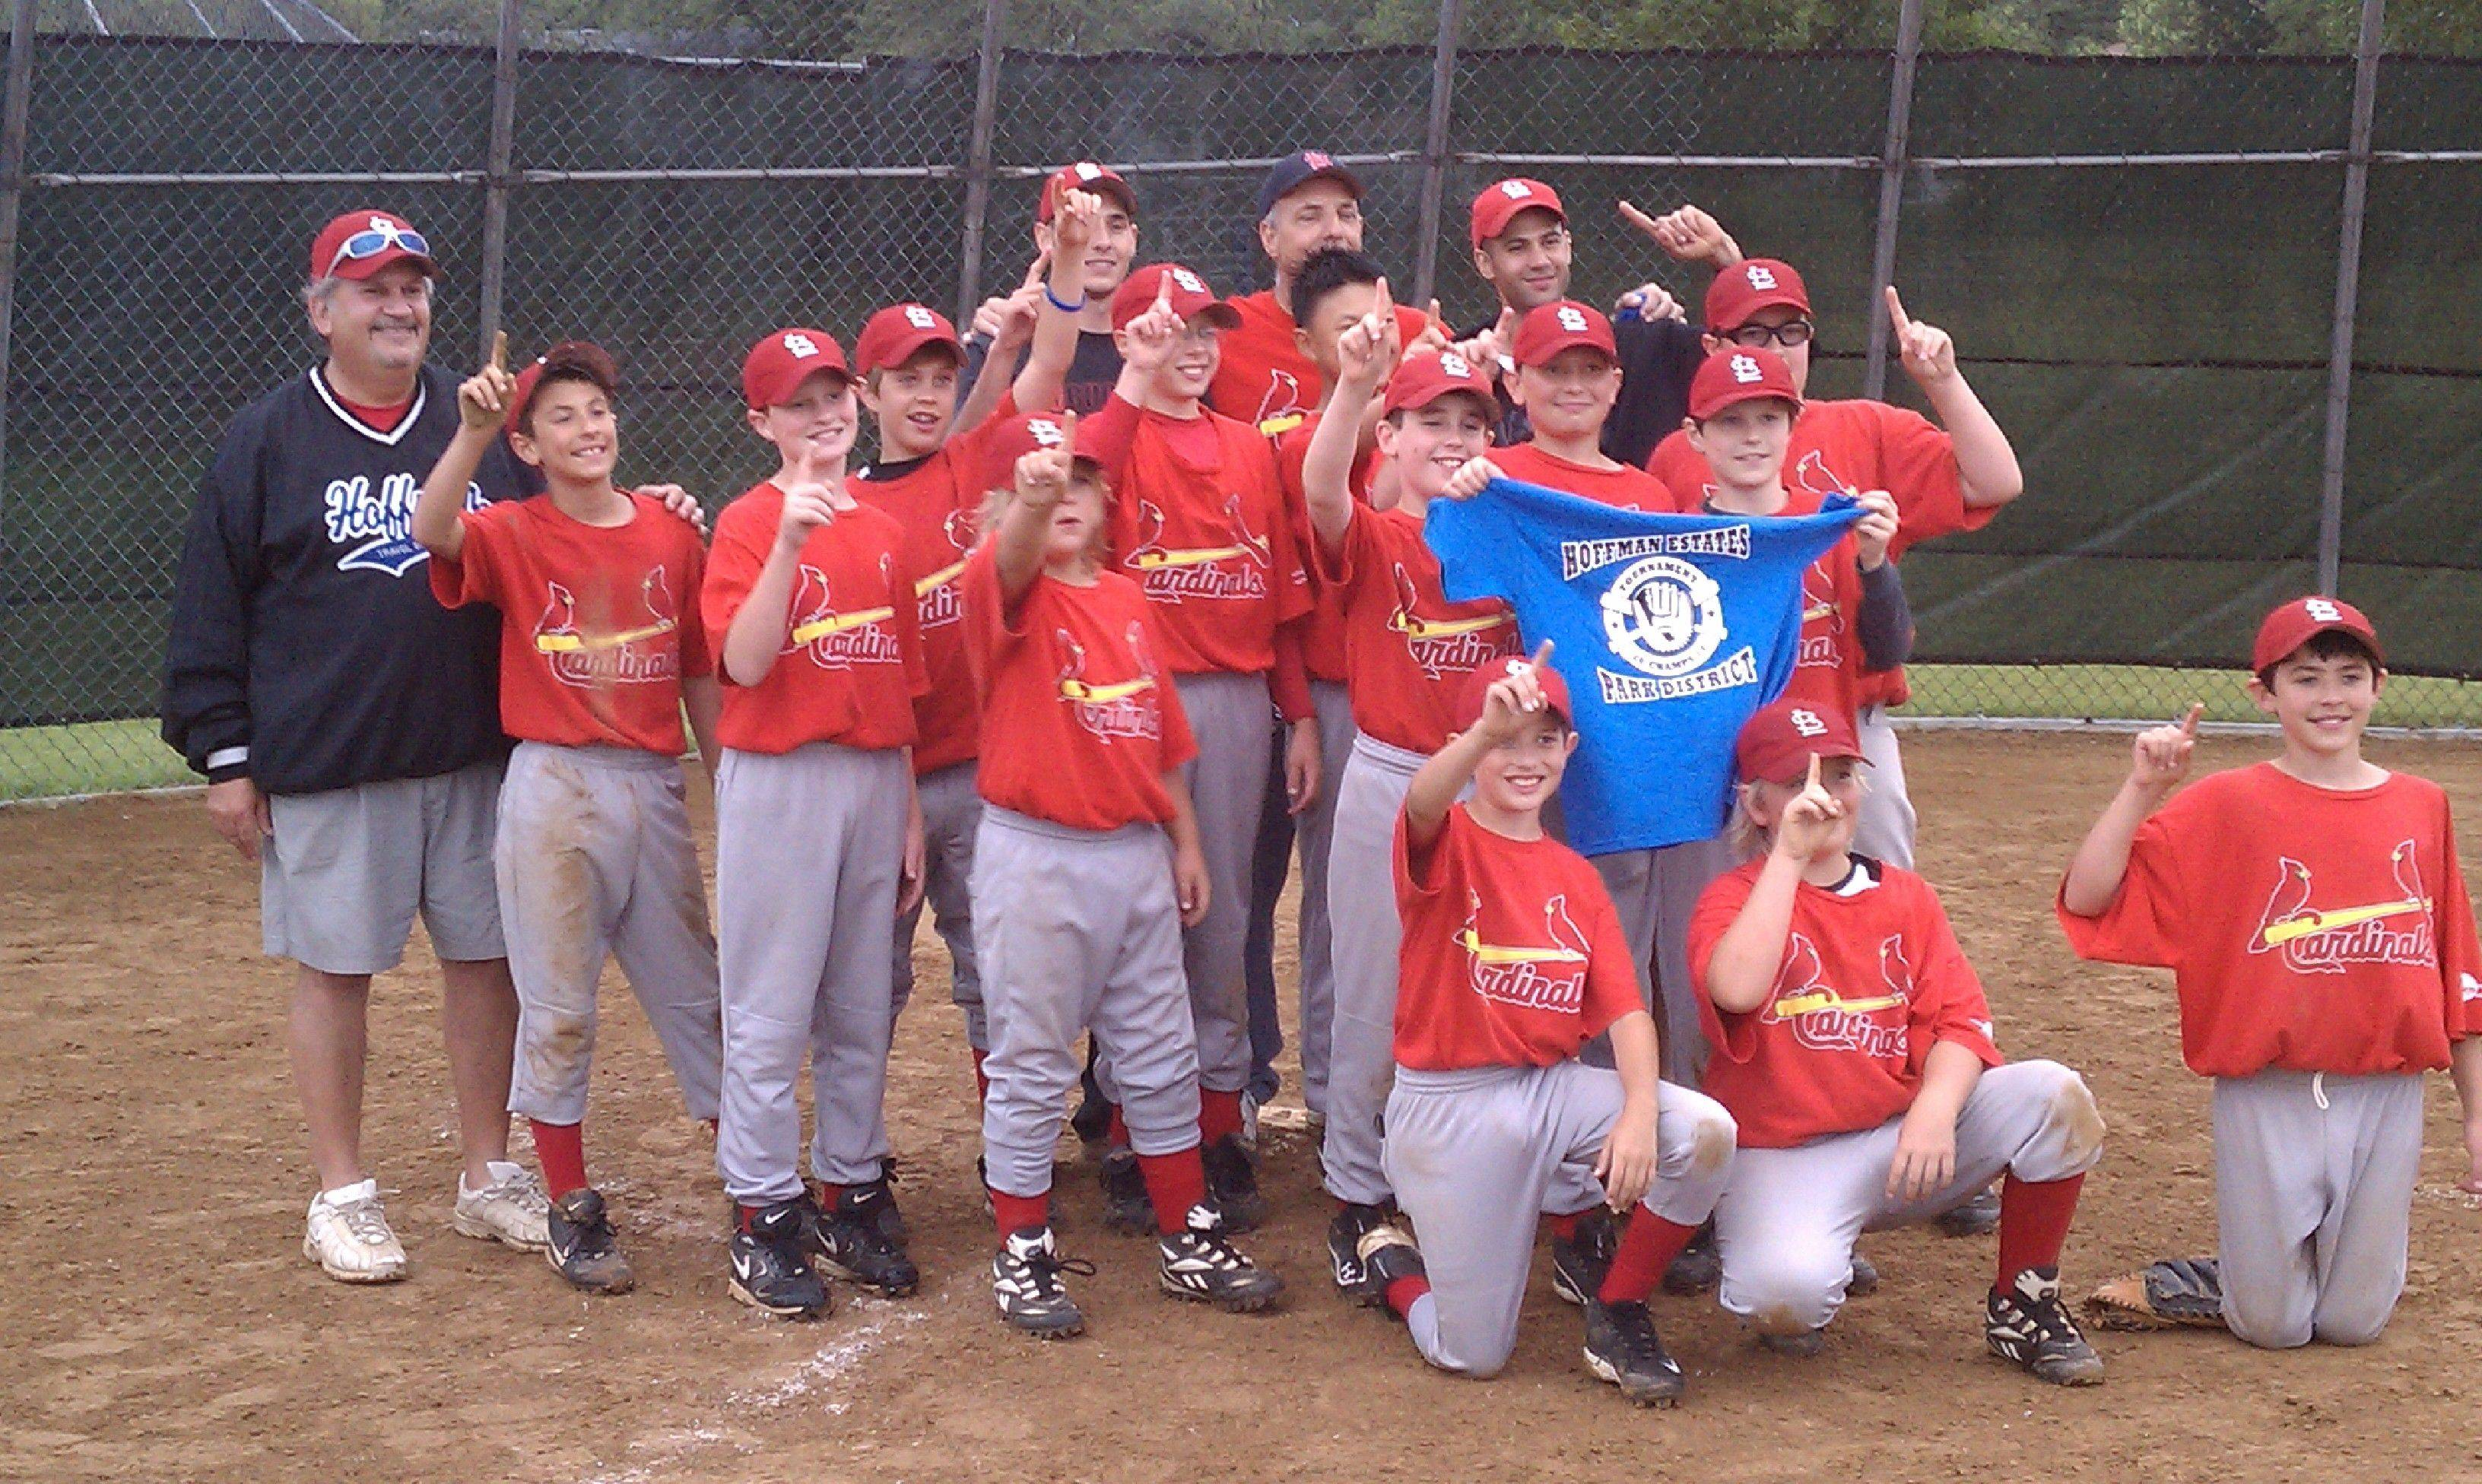 Marc Friedman, in blue, along with fellow coaches in the back row Kyle Sertich, David T. Sertich and David M. Sertich pose with their Bronco Cardinals baseball team after winning the park district league championship.